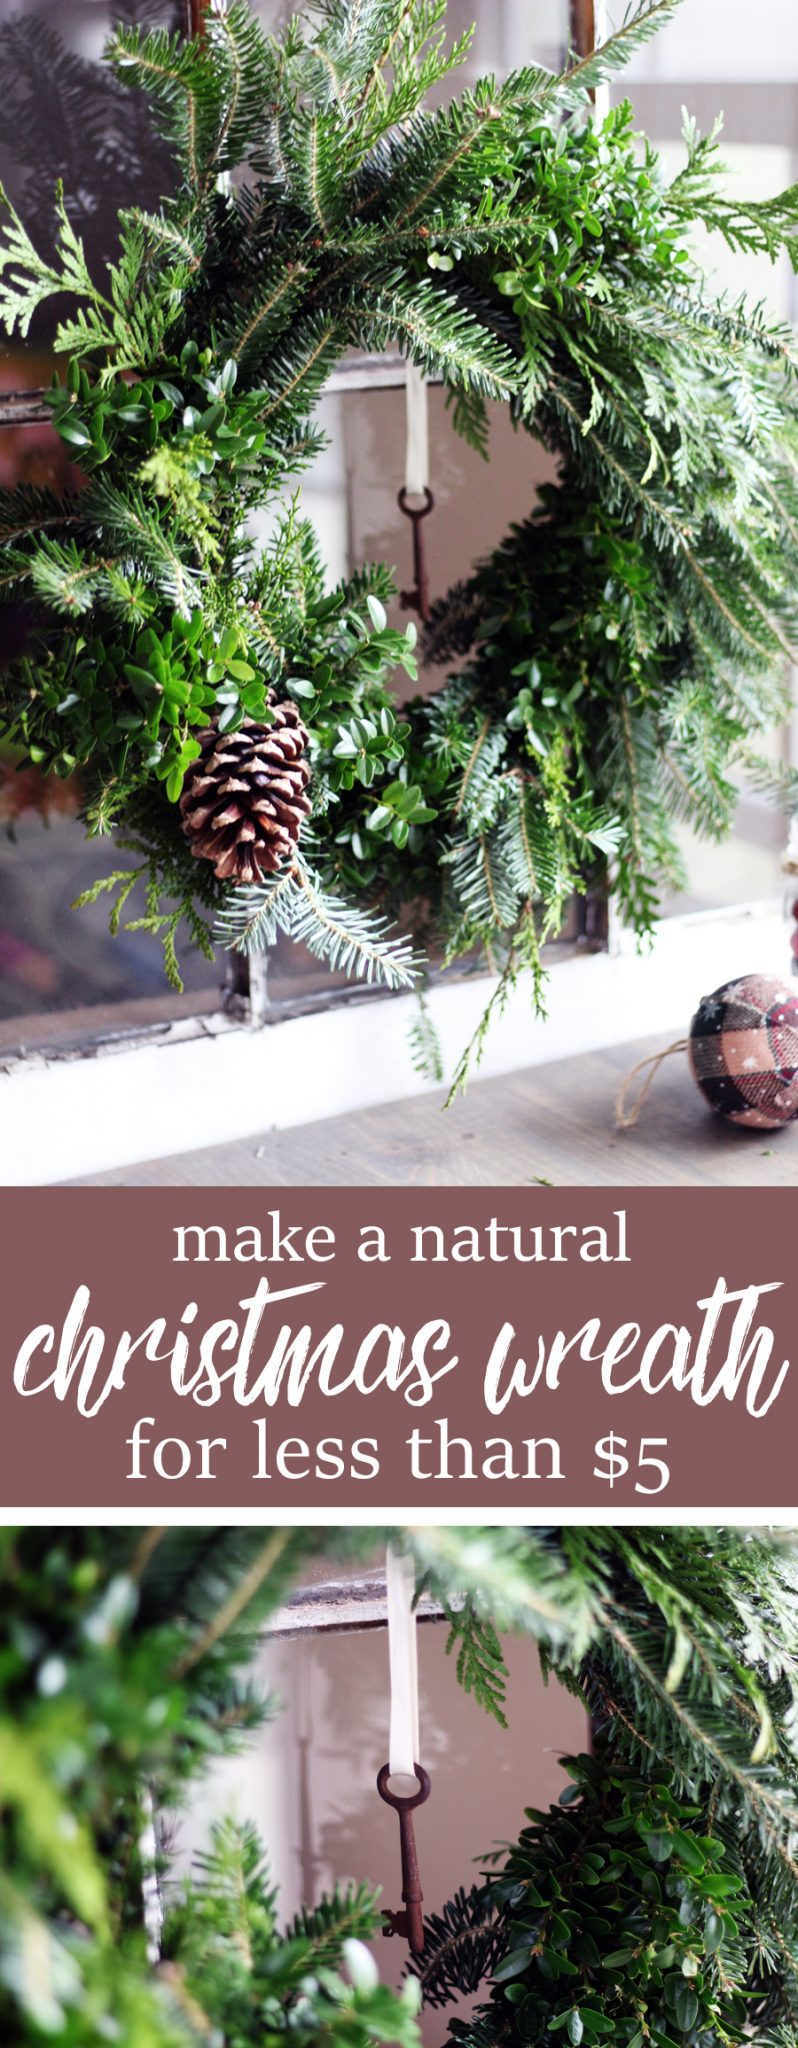 Learn how to quickly make this natural Christmas wreath for less than $5.